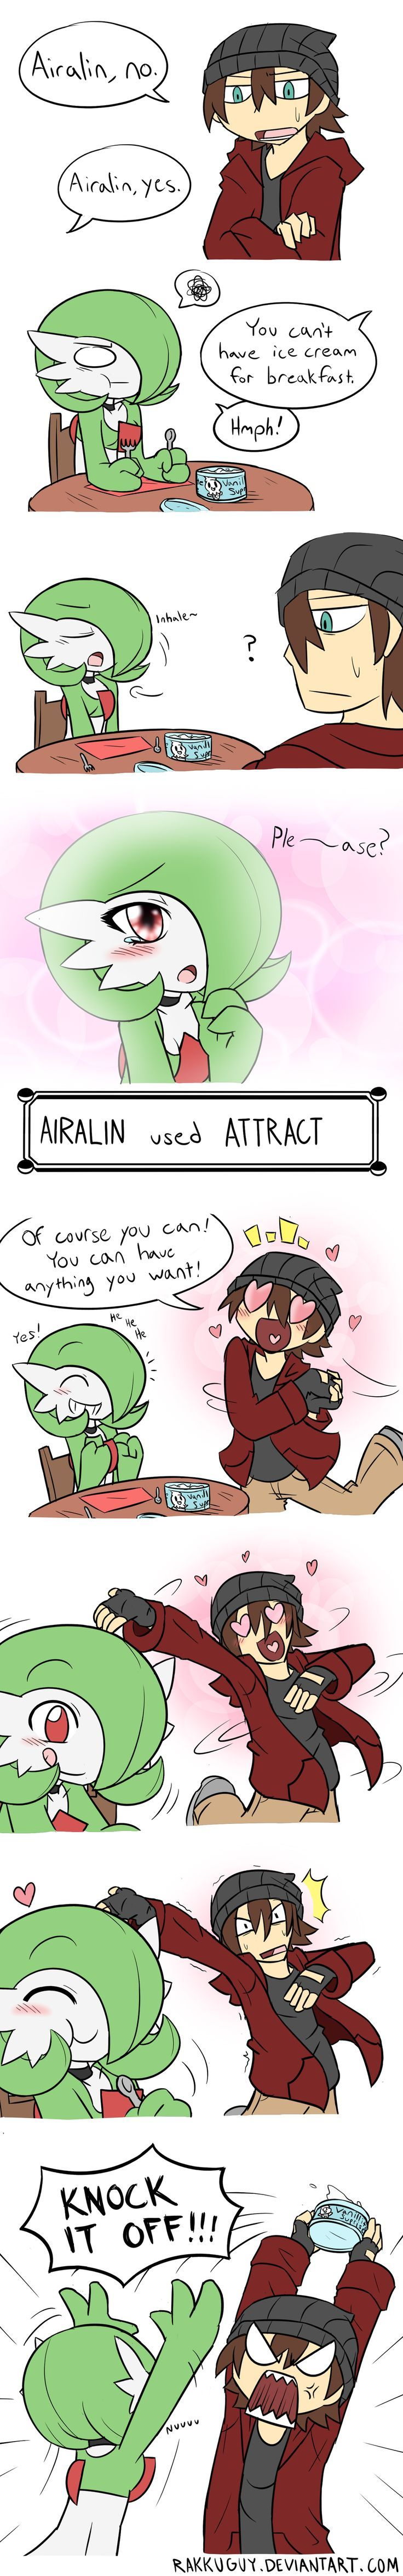 """""""Attract"""" can be a very persuasive move that can benefit your Pokemon. If they wish to learn """"Attract"""", let them do so at your own risk."""